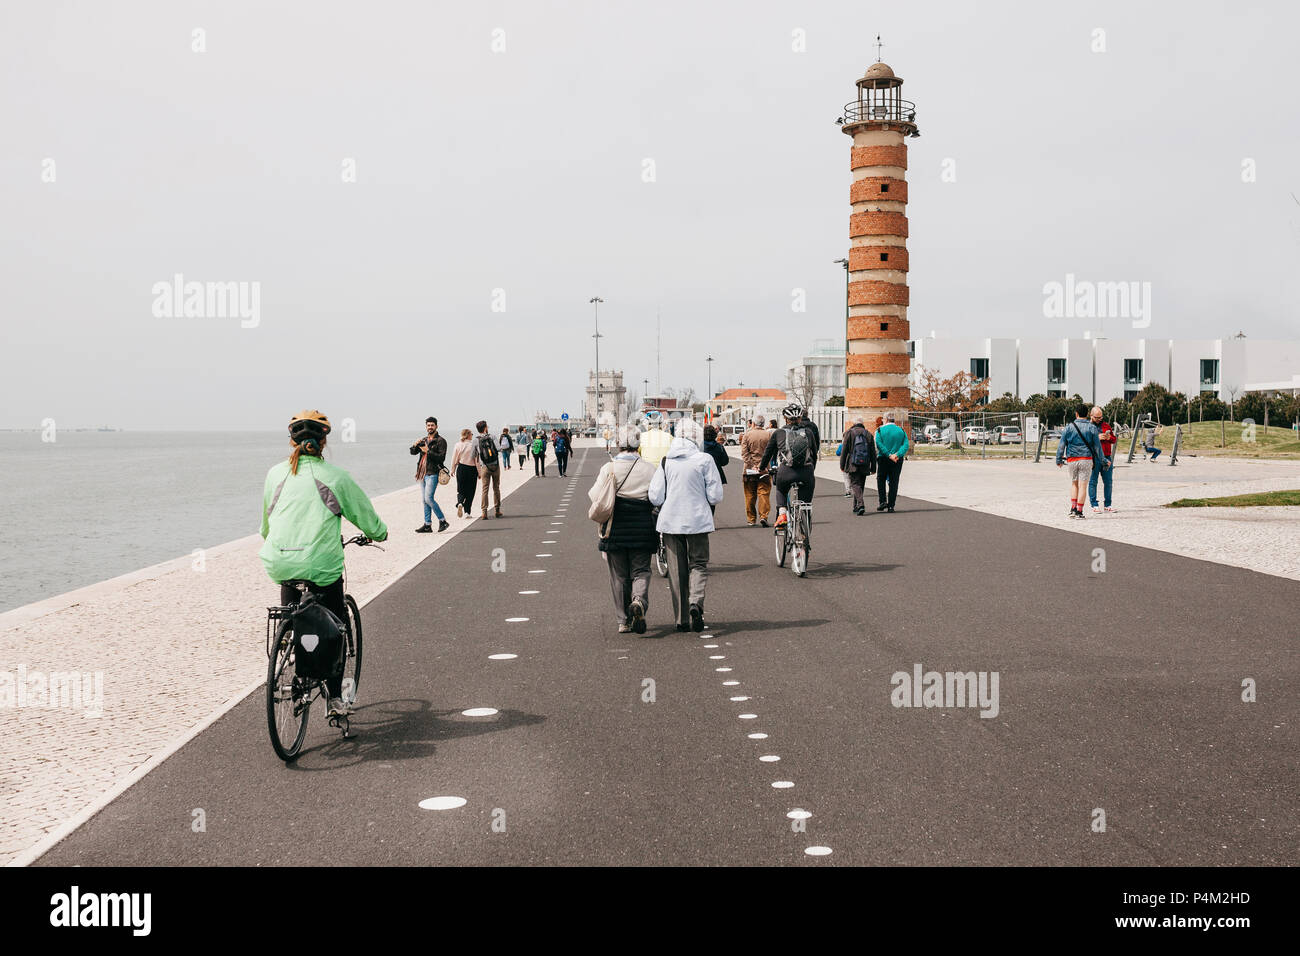 Lisbon, June 18, 2018: People stroll along the promenade in the Belem area. Some people ride bicycles. Ordinary city life Stock Photo